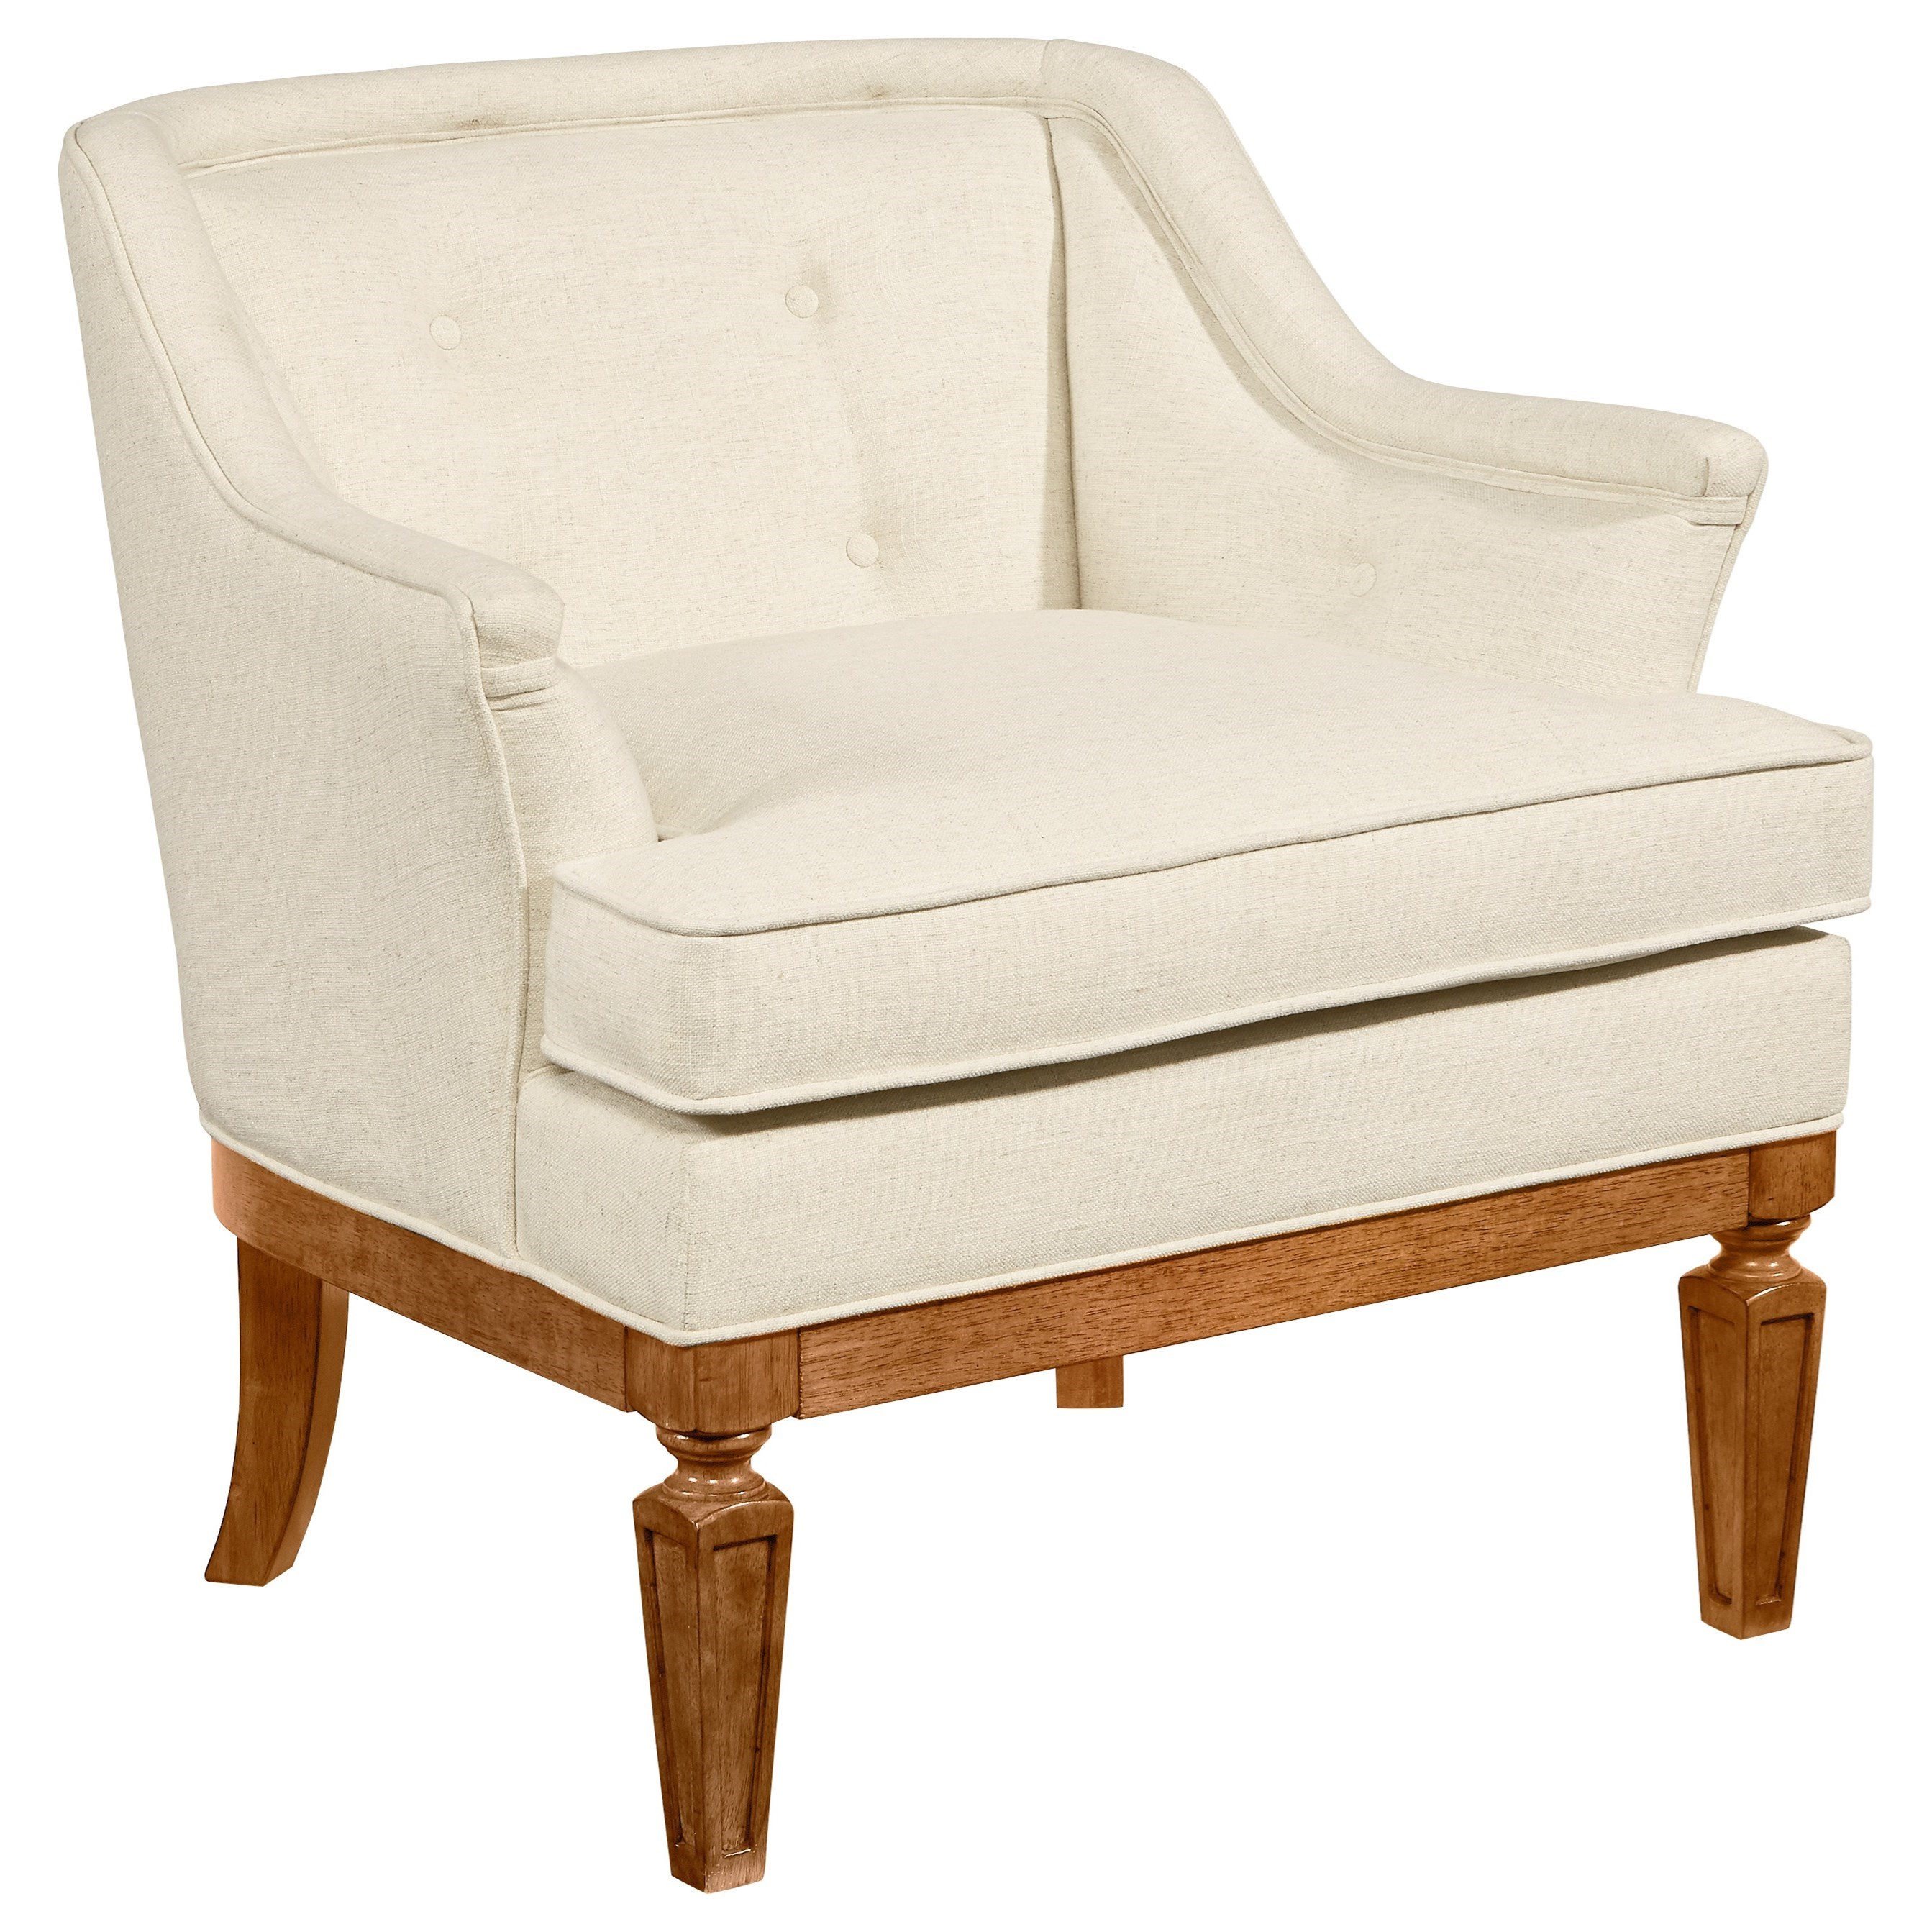 tub accent chair walmart zero gravity magnolia home by joanna gaines chairs cotillion upholstered